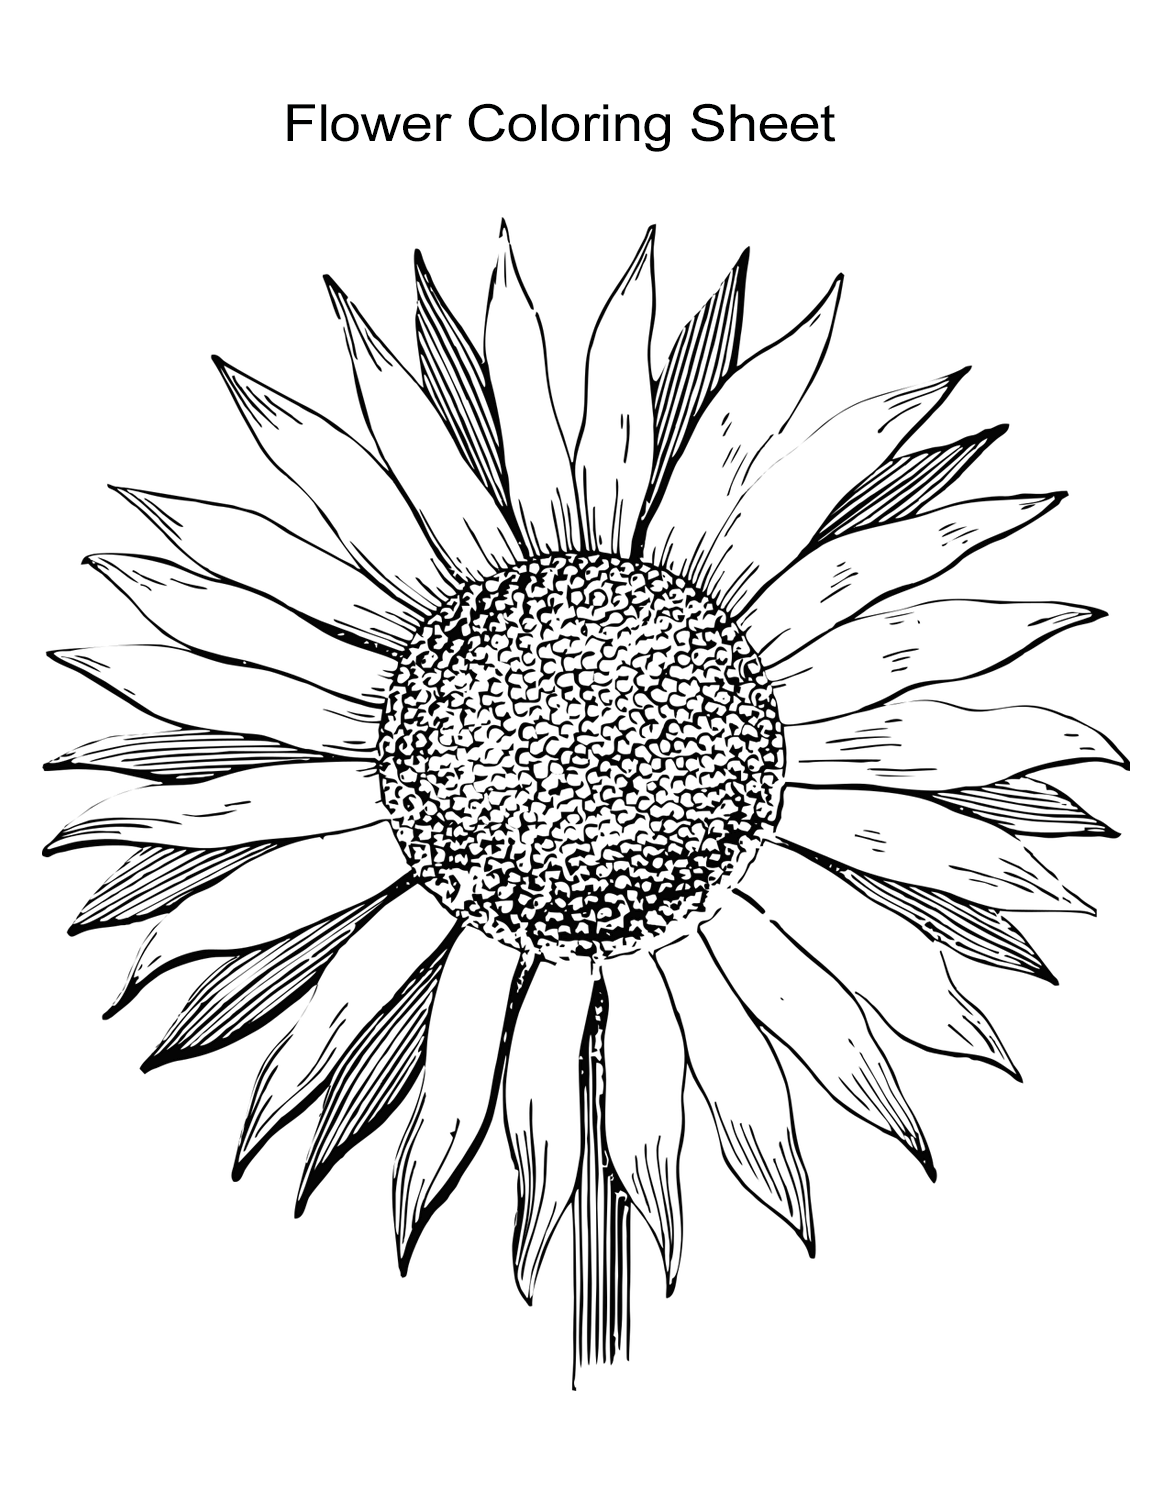 10 flower coloring sheets for girls and boys free printables to use